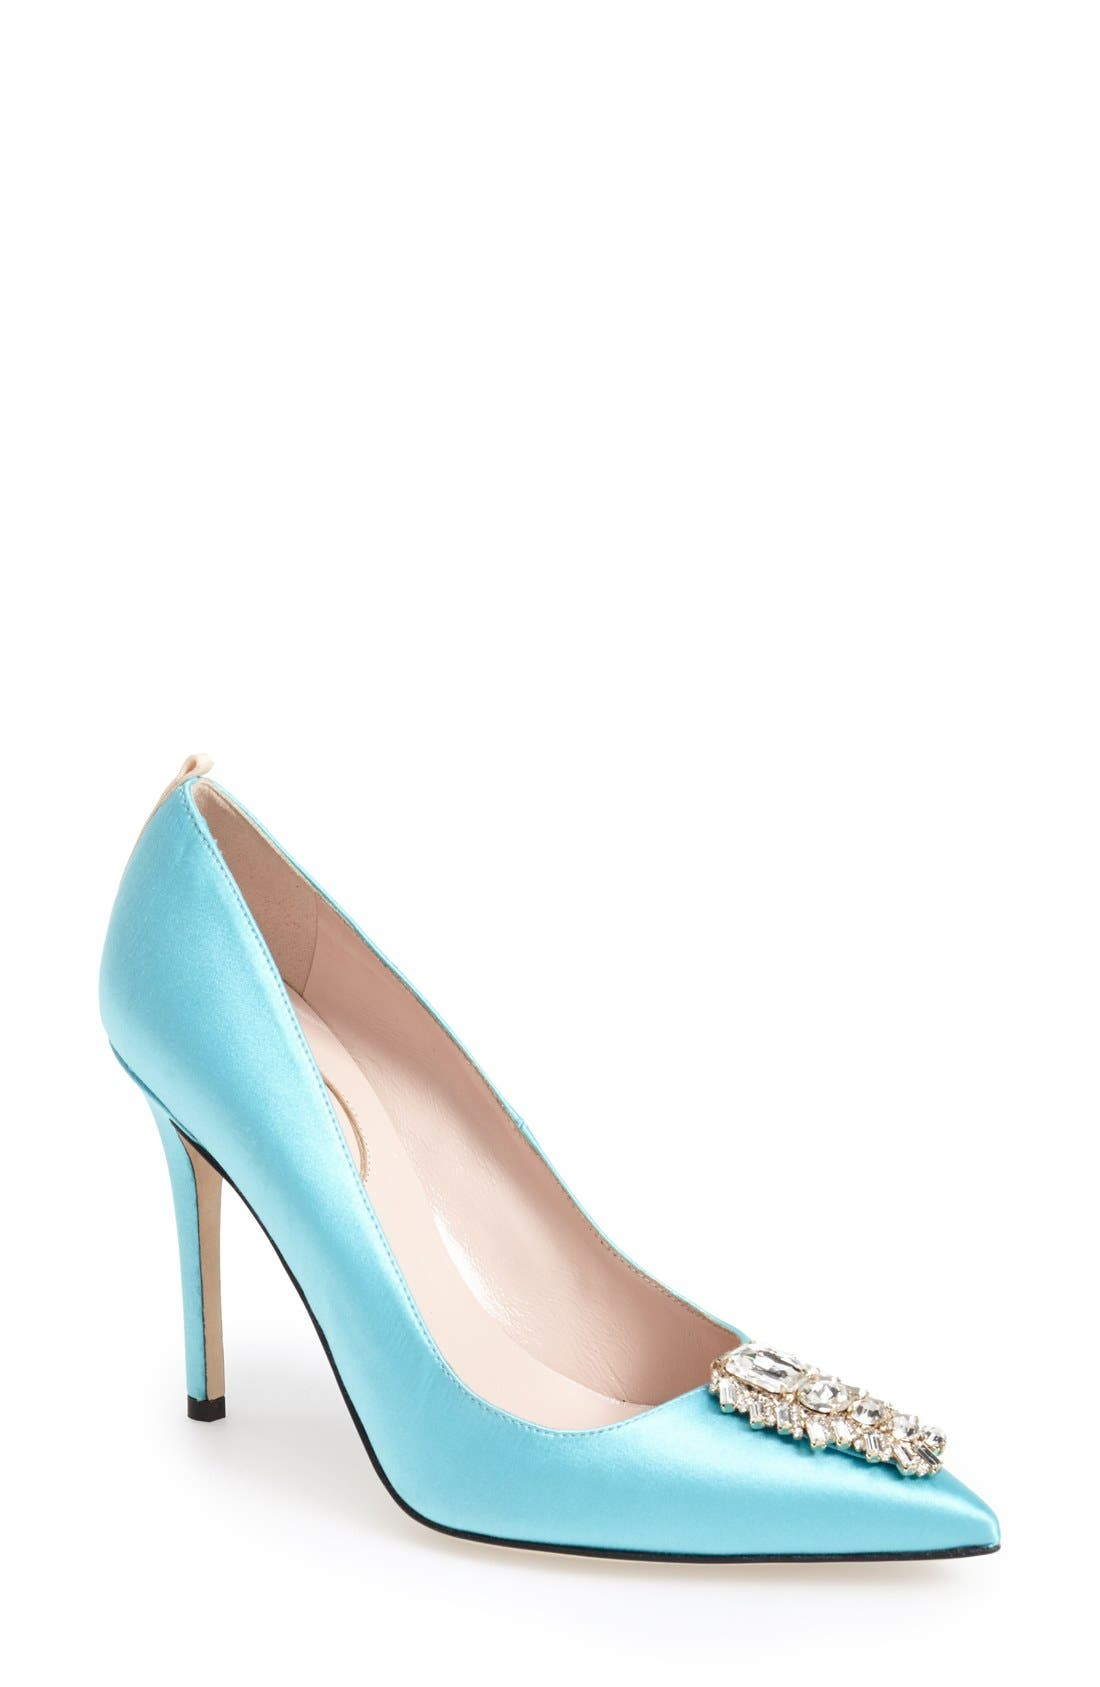 Alternate Image 1 Selected - SJP by Sarah Jessica Parker 'Tempest' Pointy Toe Pump (Women) (Nordstrom Exclusive)